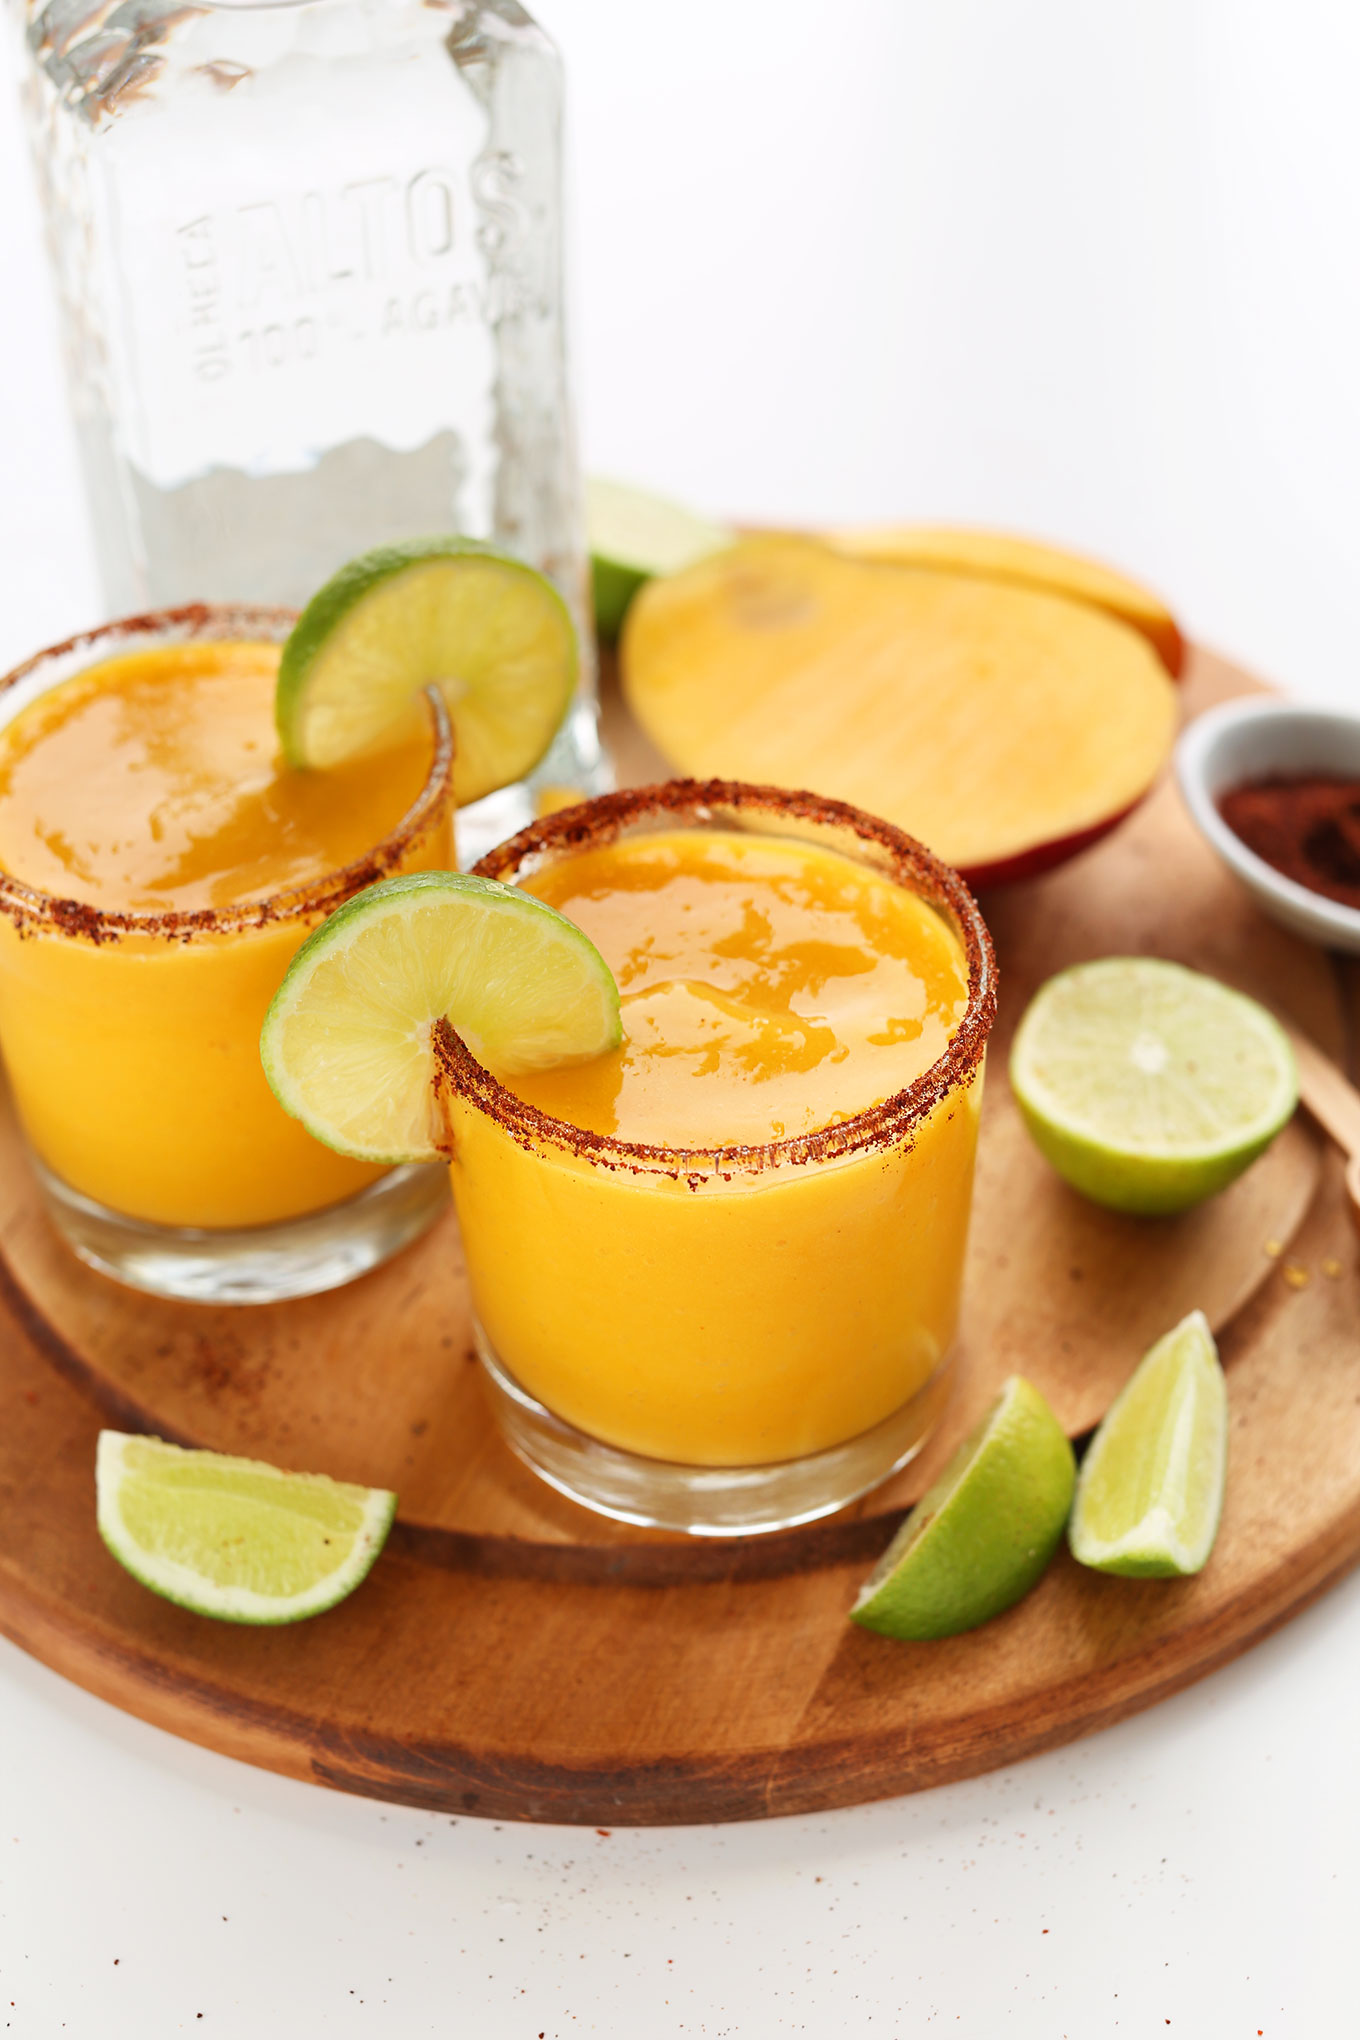 Perfectly sweet, tart, and spicy Blended Mango Chili Margaritas on a cutting board with fresh limes